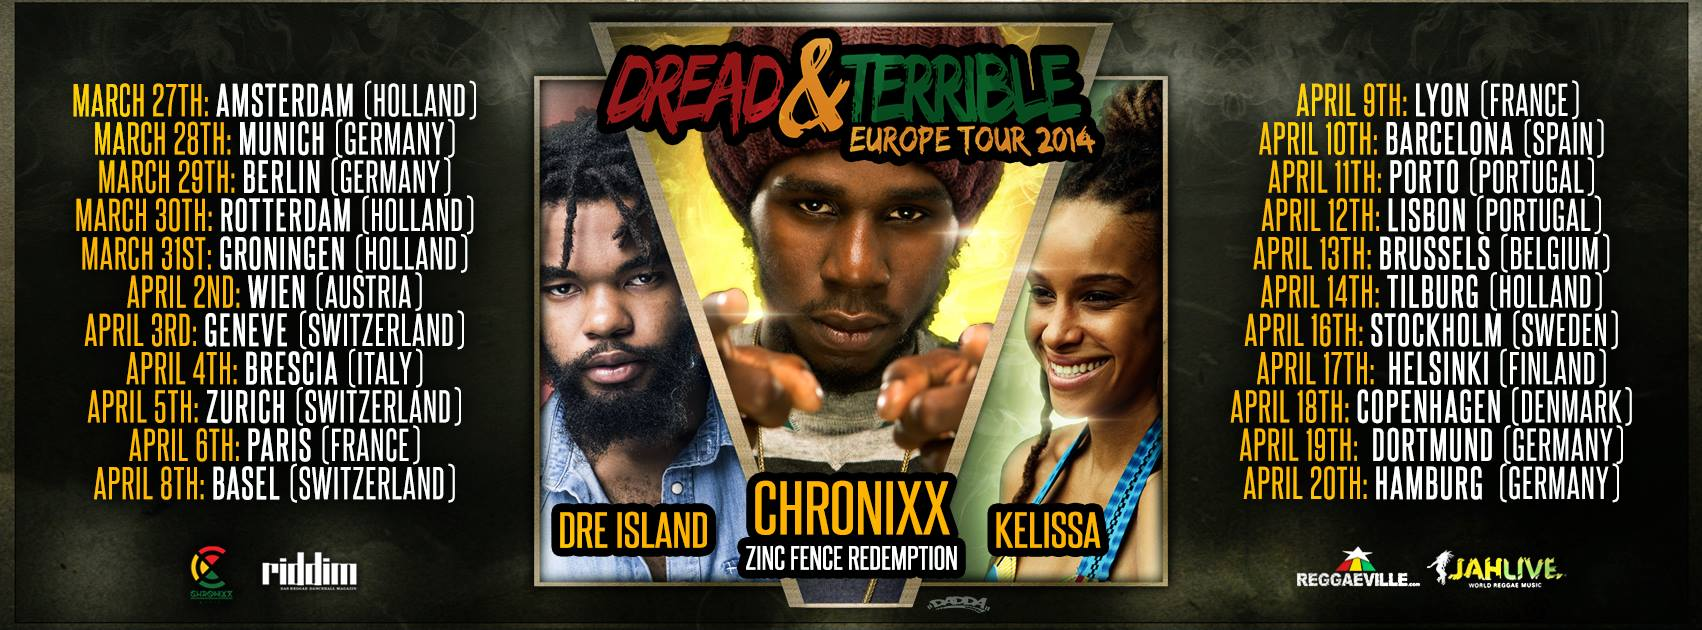 CHRONIXX - DREAD u TERRIBLE-EUROPE-TOUR-2014